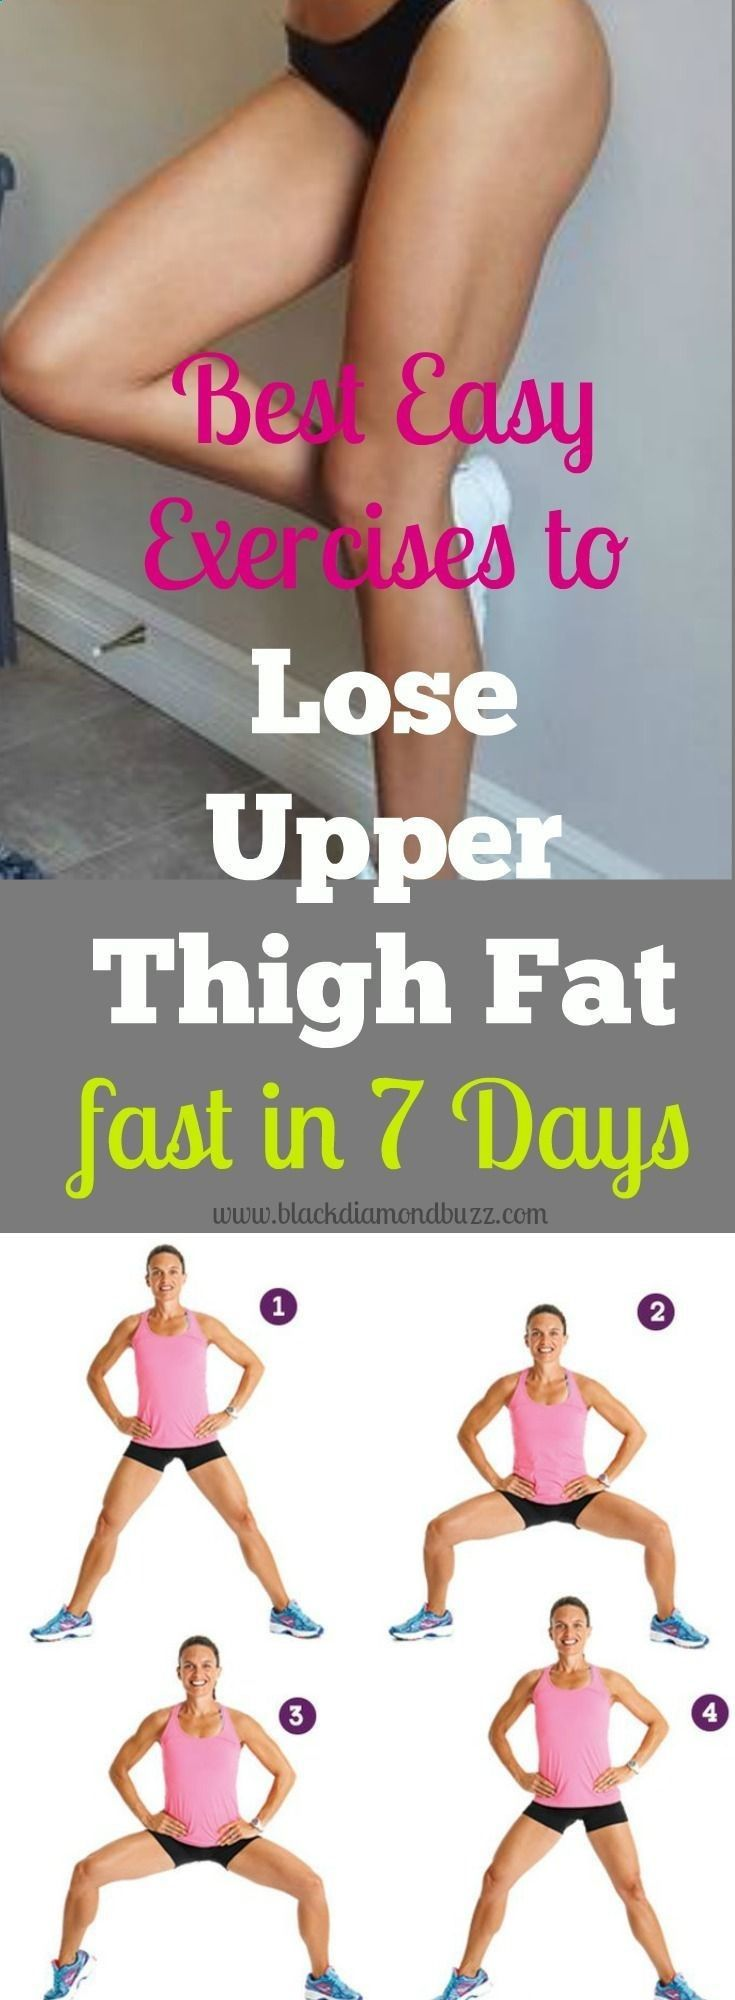 After Yoga - Get rid of that thigh fat now with this best workout at home .Burn 20 pounds of your inner thigh fat naturally with healthy diet and with a proven sexy slim thigh and legs before and after results . You can even try early morning yoga to it. Surely many times you have heard that if you consume carbohydrates (HC) while you train you will burn less fat and most of the positive effects of training will go to waste.